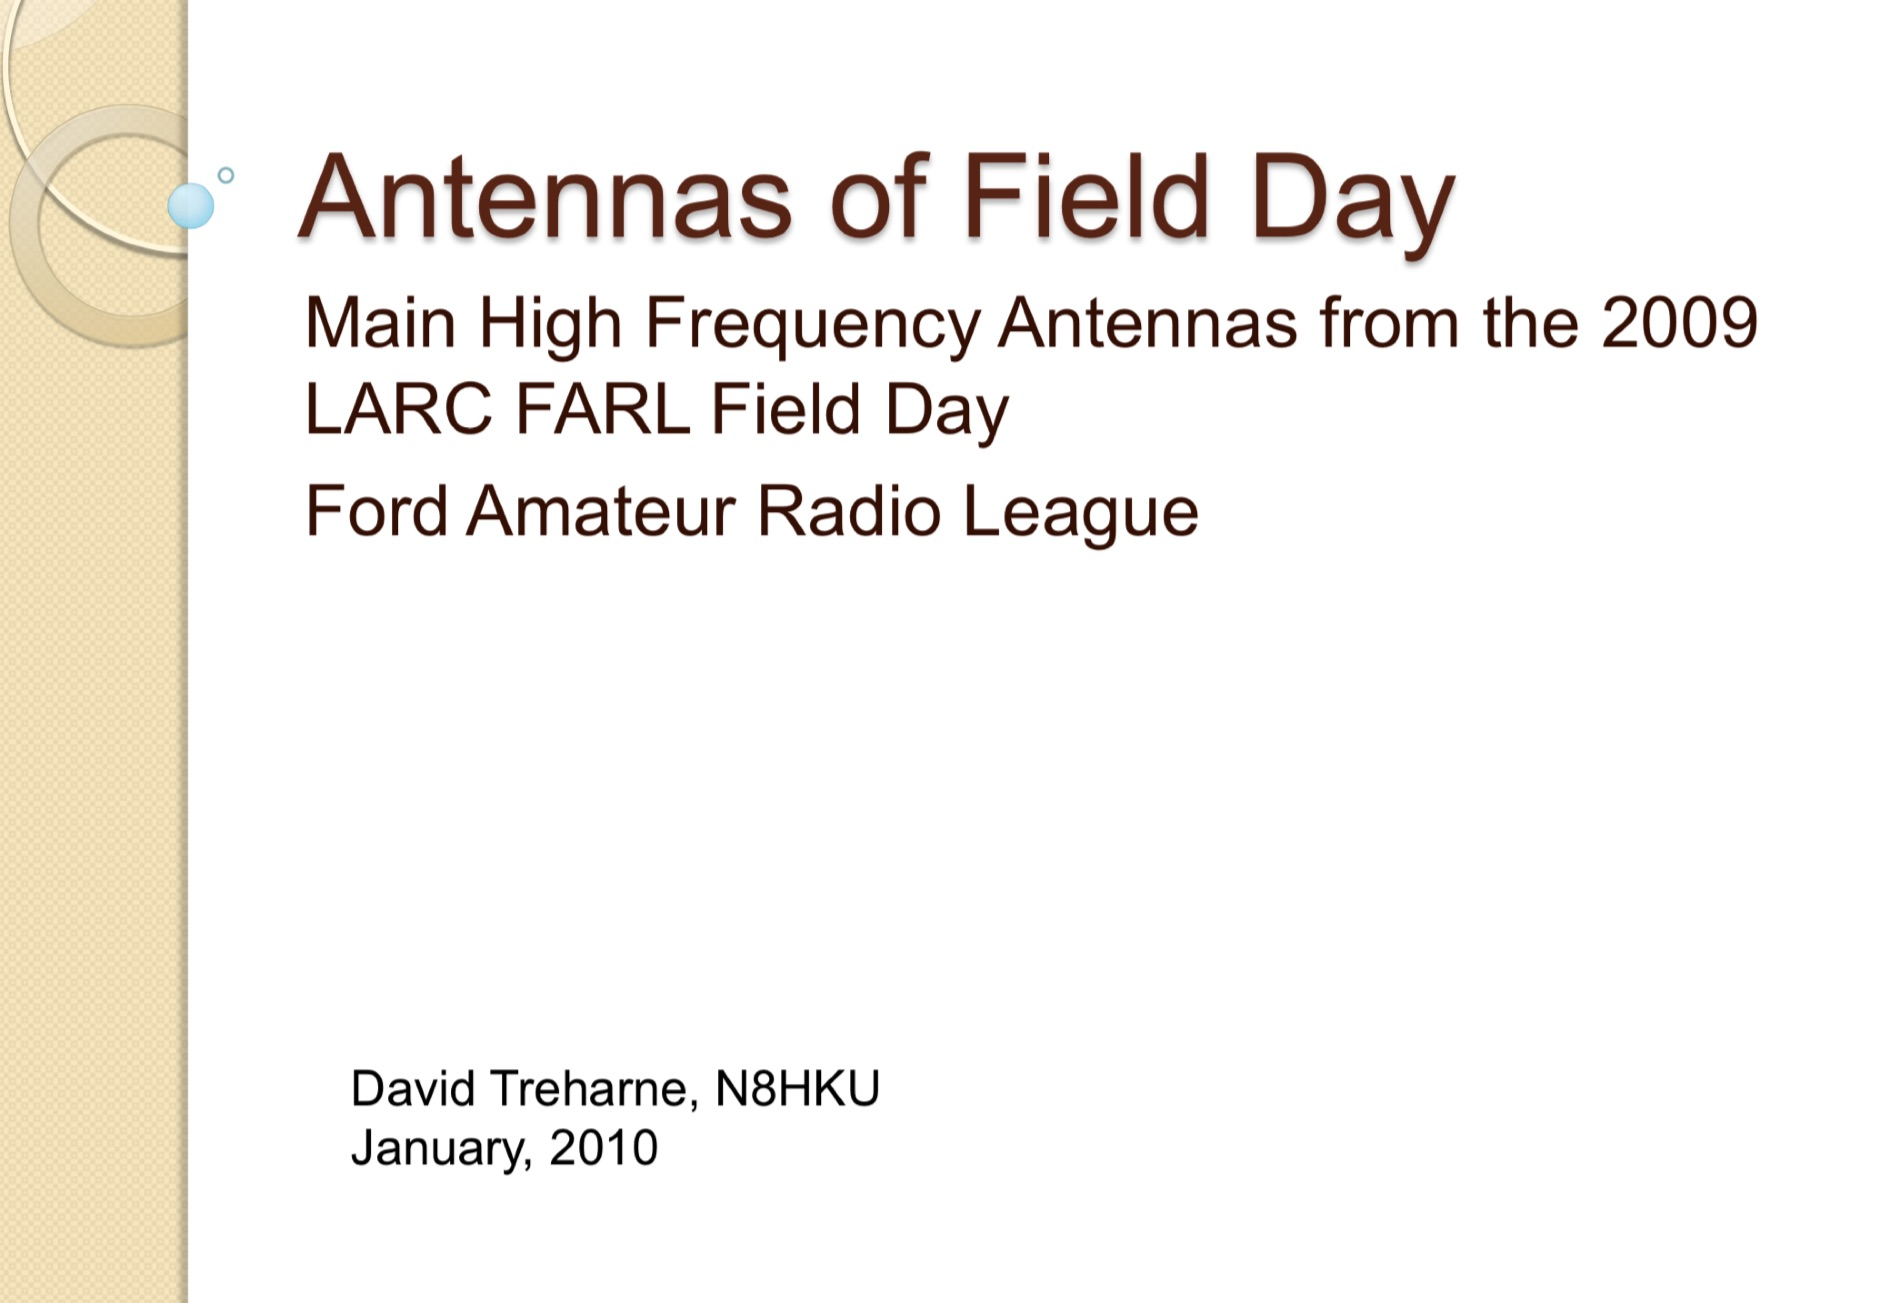 Antennas of Field Day